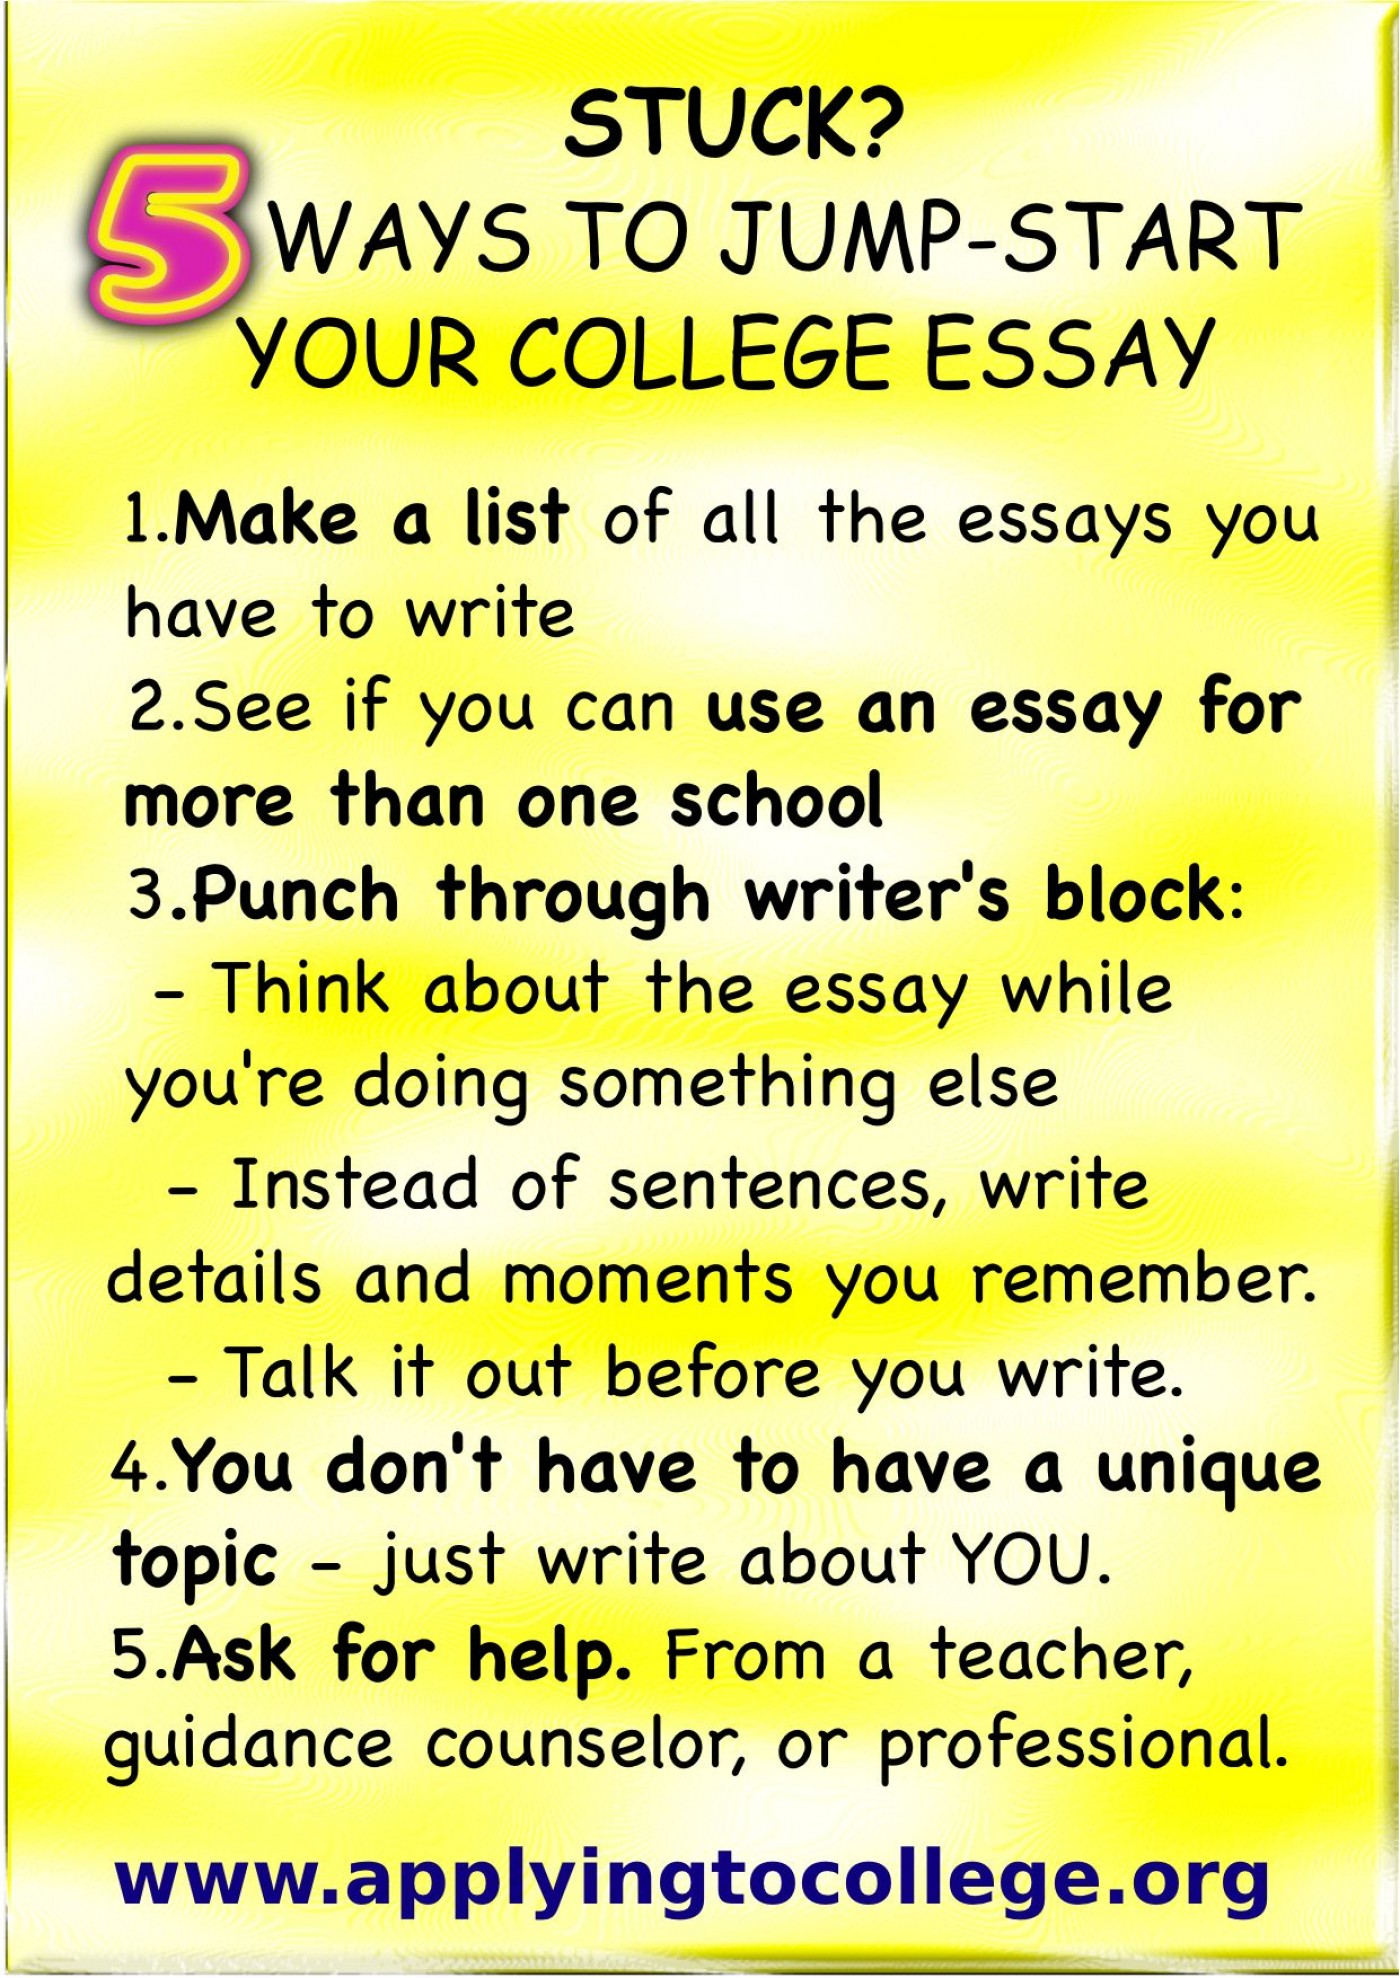 017 Writing College Application Essays Essay Marvelous Tips For Level Admission Sample Guide To 1400